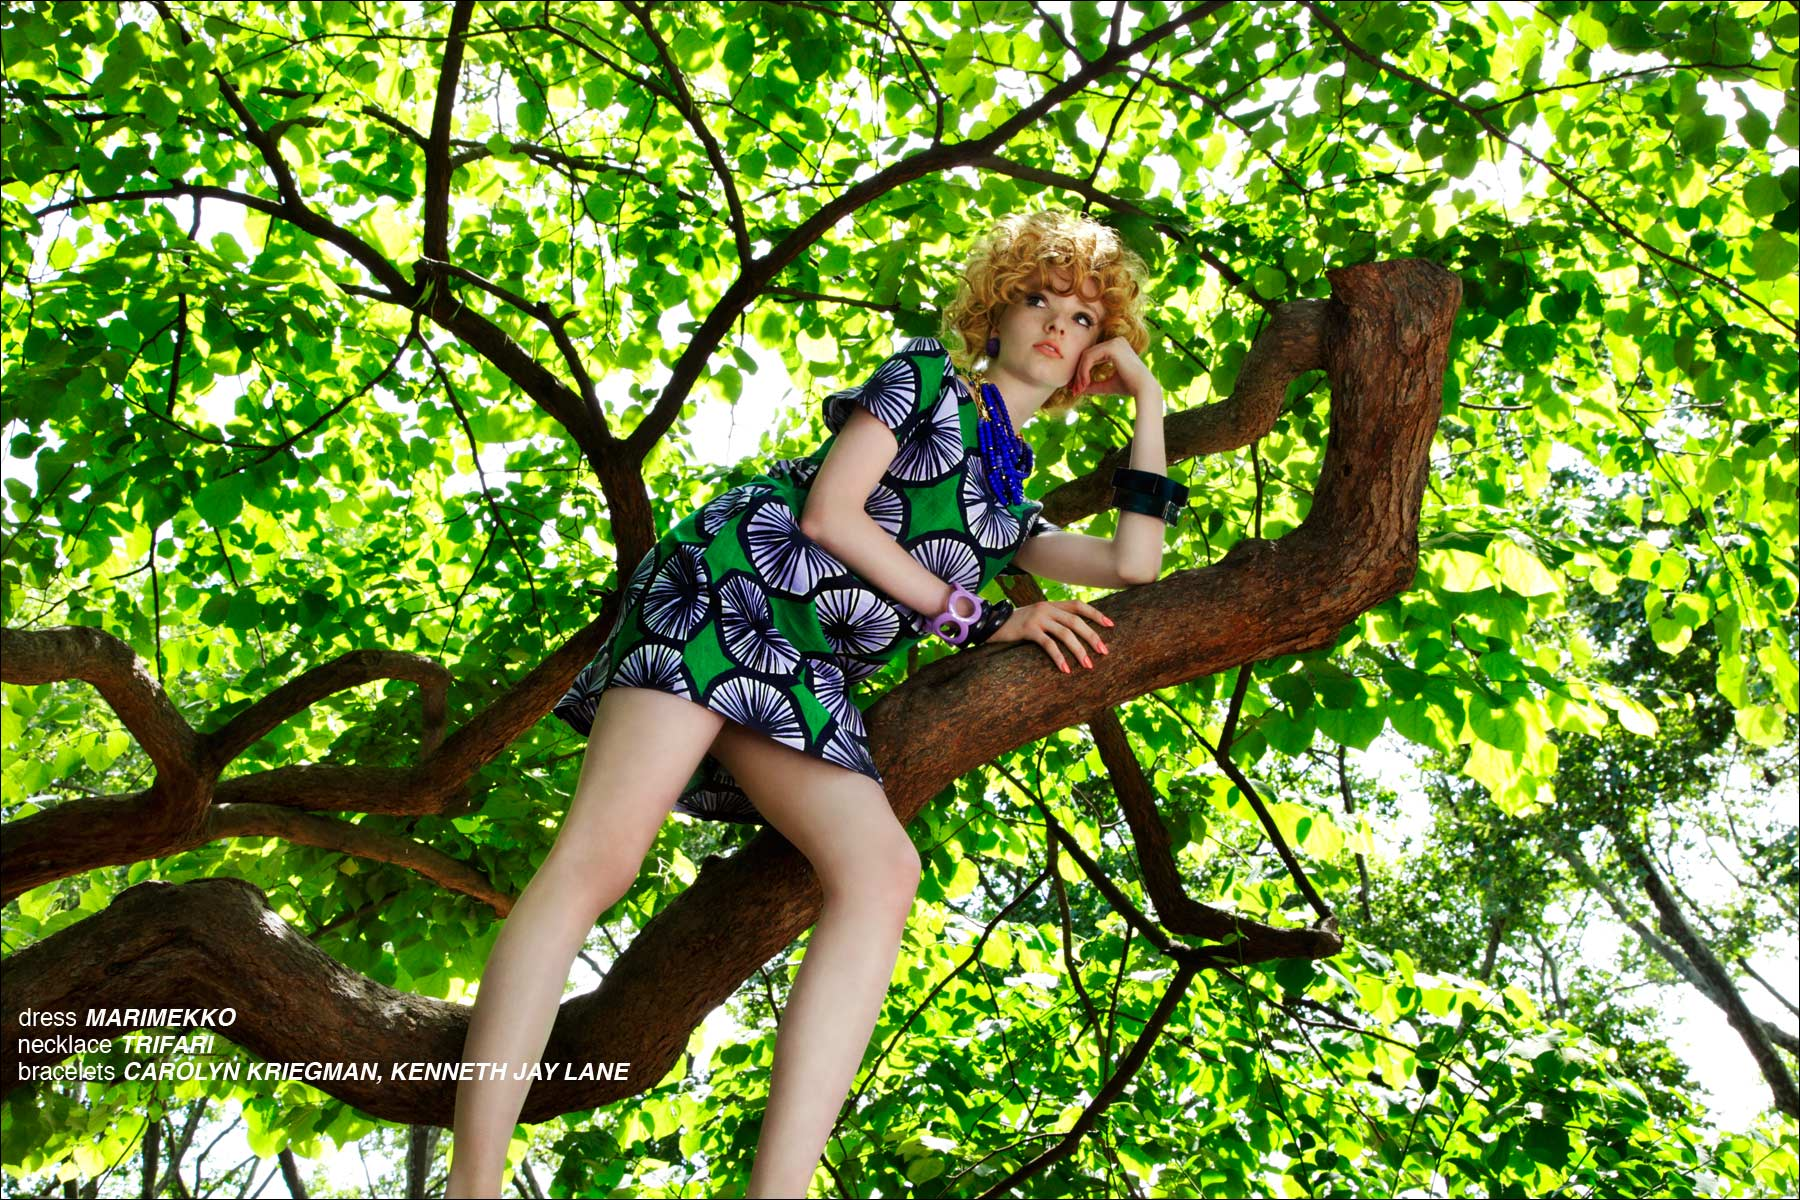 A model in a Marimekko dress, photographed by Alexander Thompson for Ponyboy Magazine in New York City.